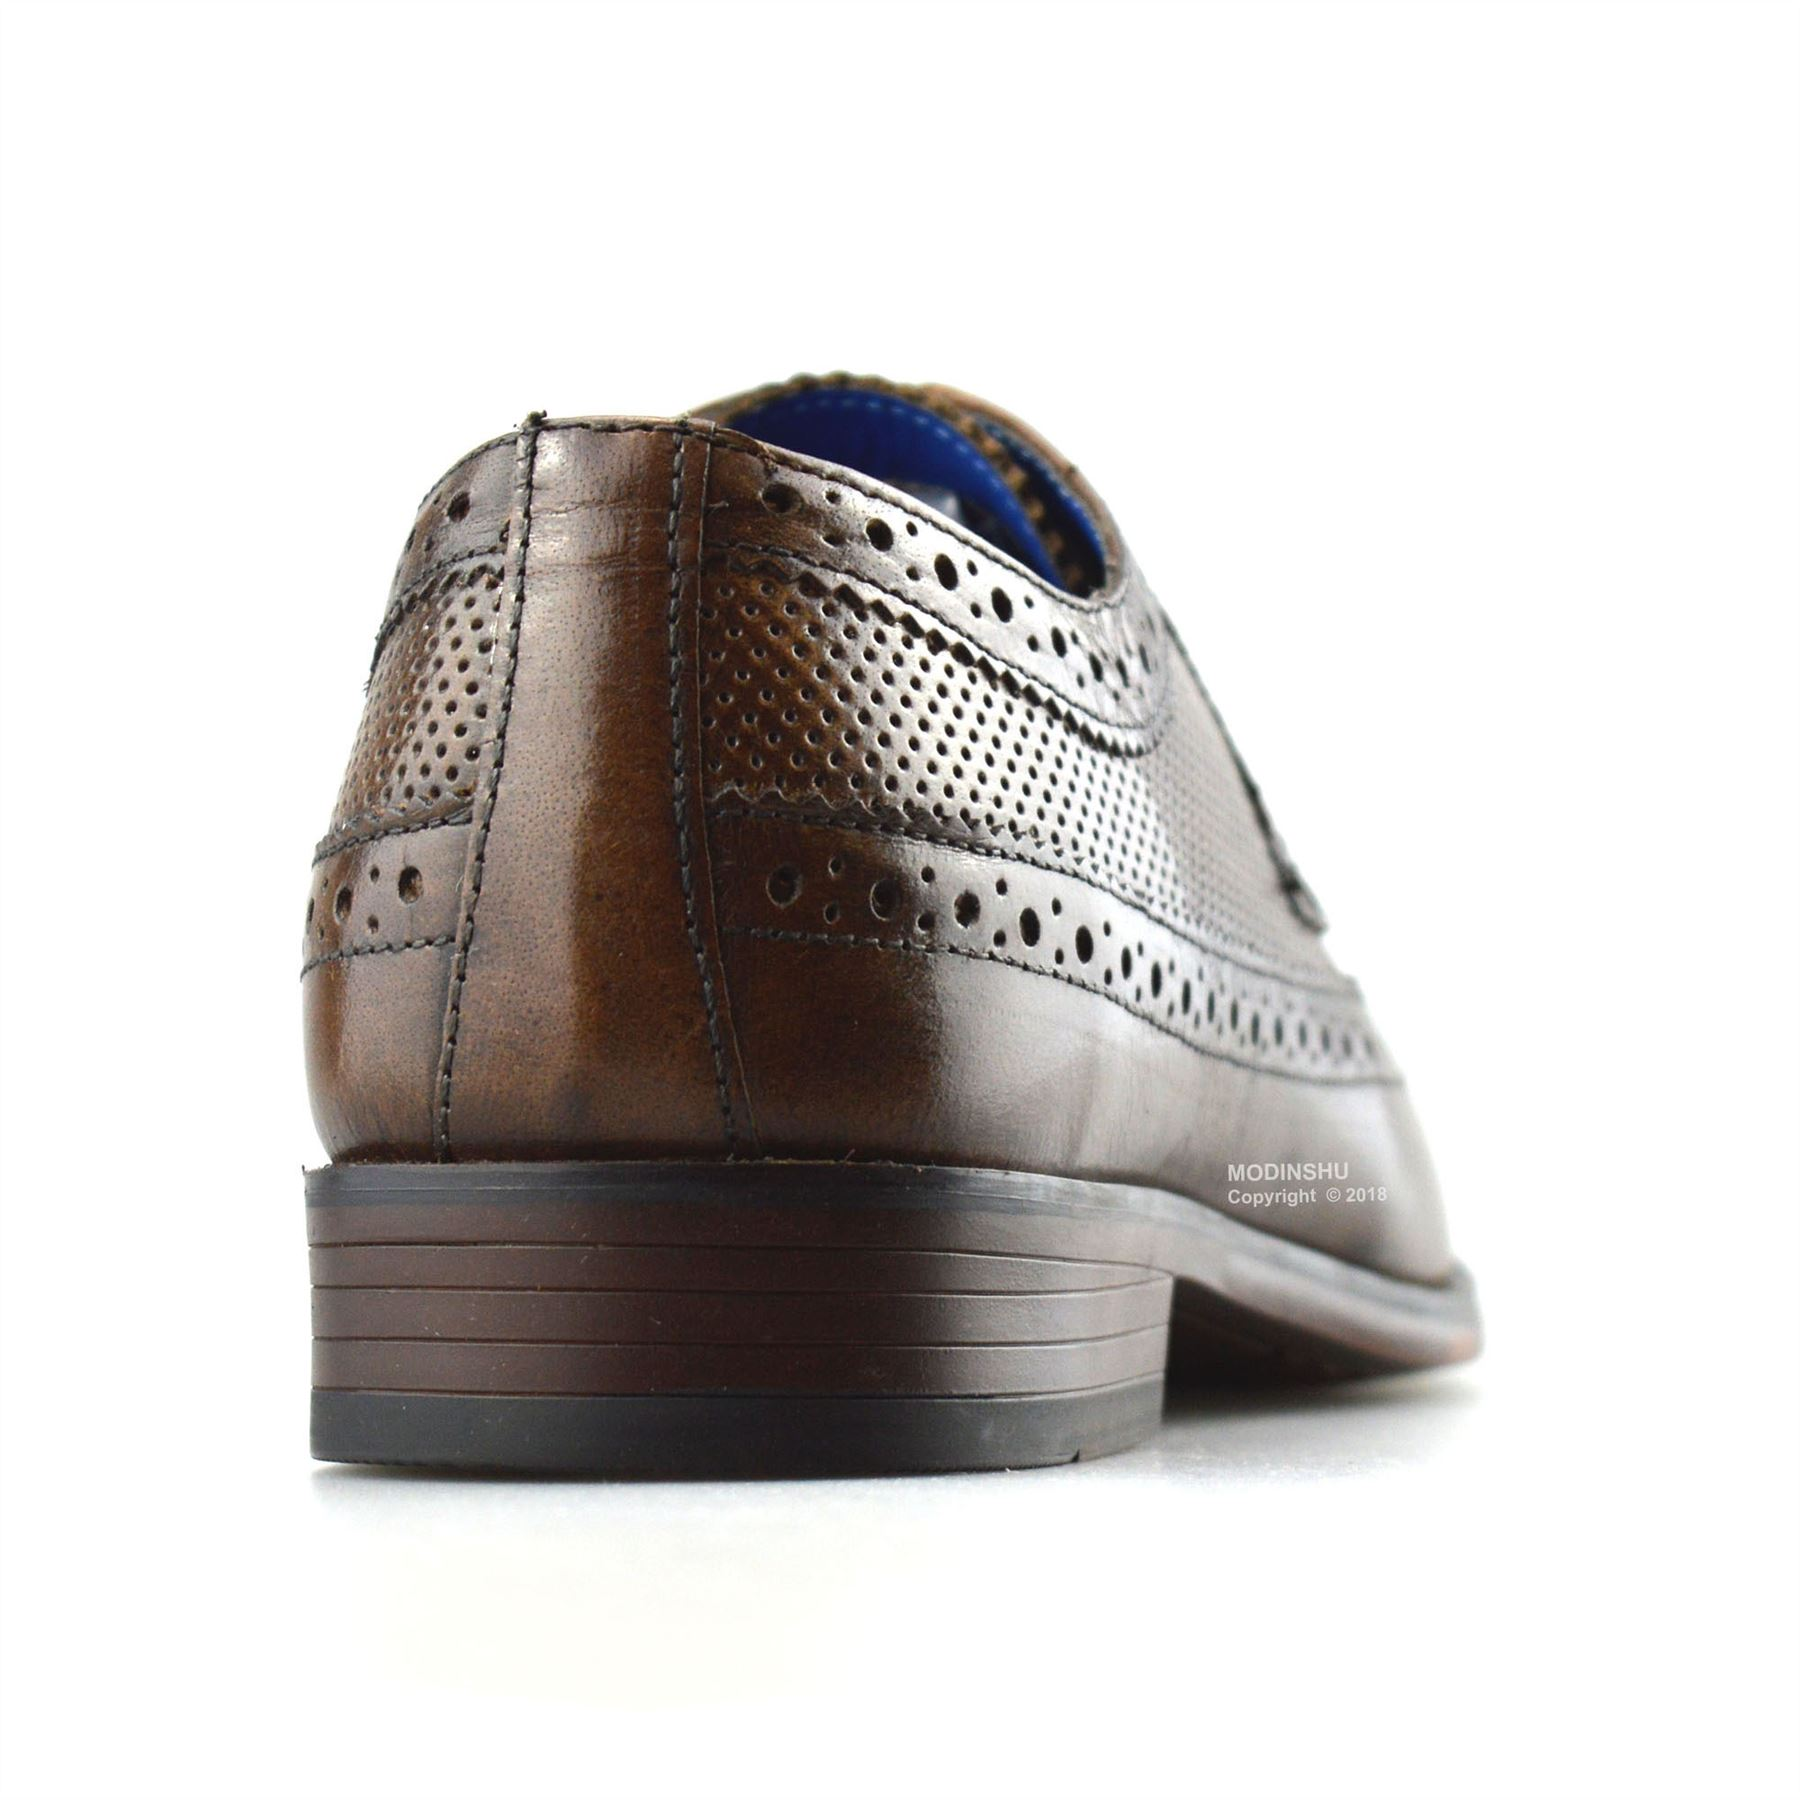 Mens-Leather-Brogues-Smart-Casual-Formal-Office-Lace-Up-Oxford-Brogue-Shoes-Size thumbnail 21